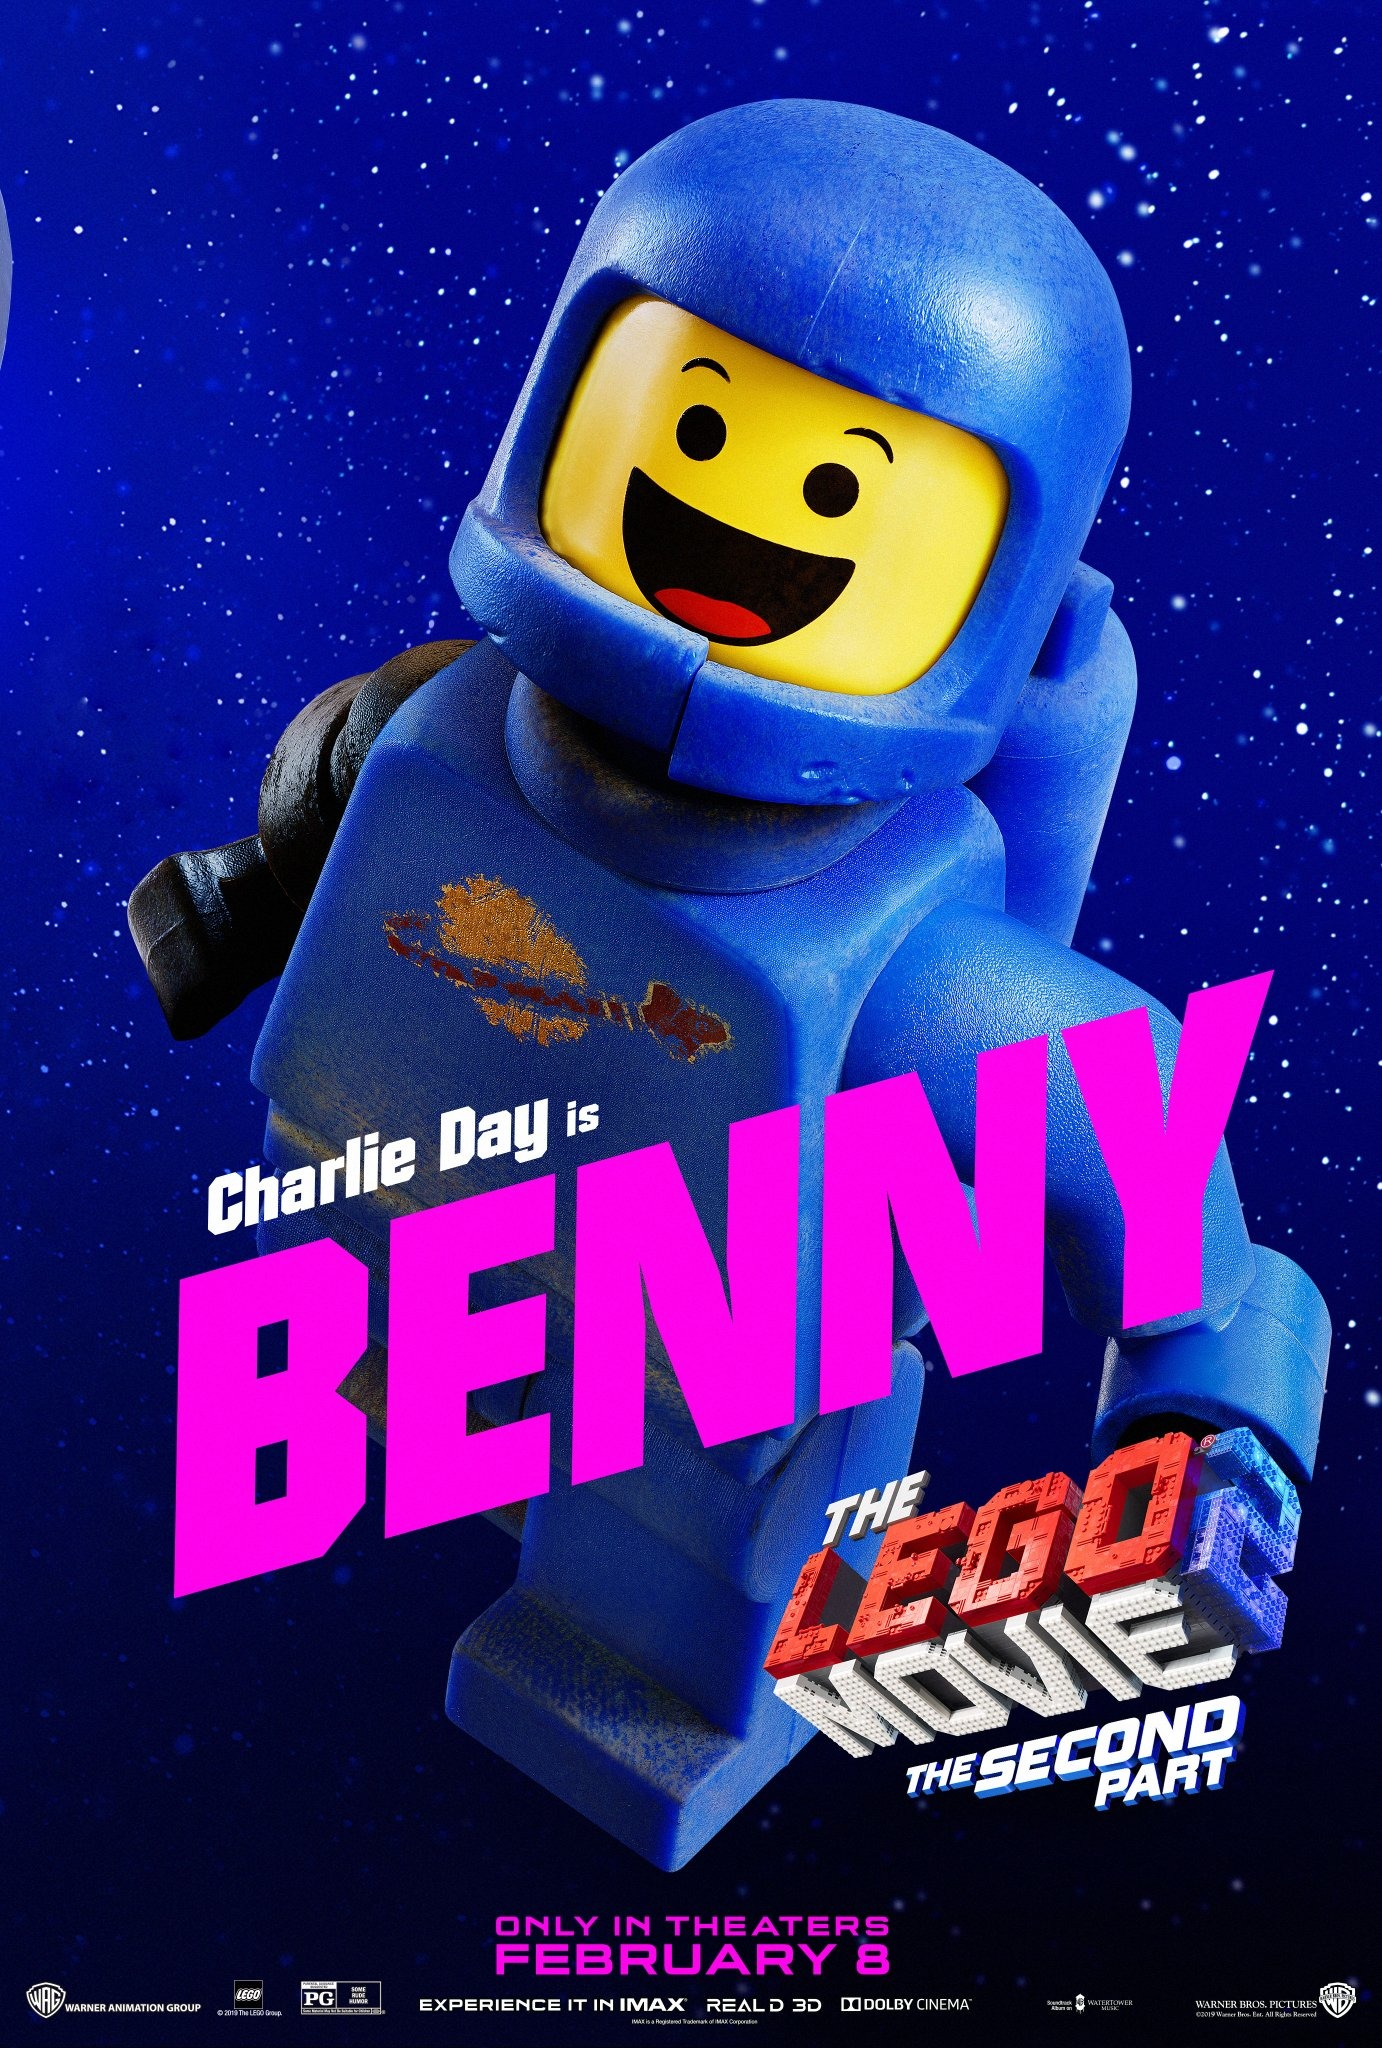 The Lego Movie 2 The Second Part Character Posters Charlie Day is Benny